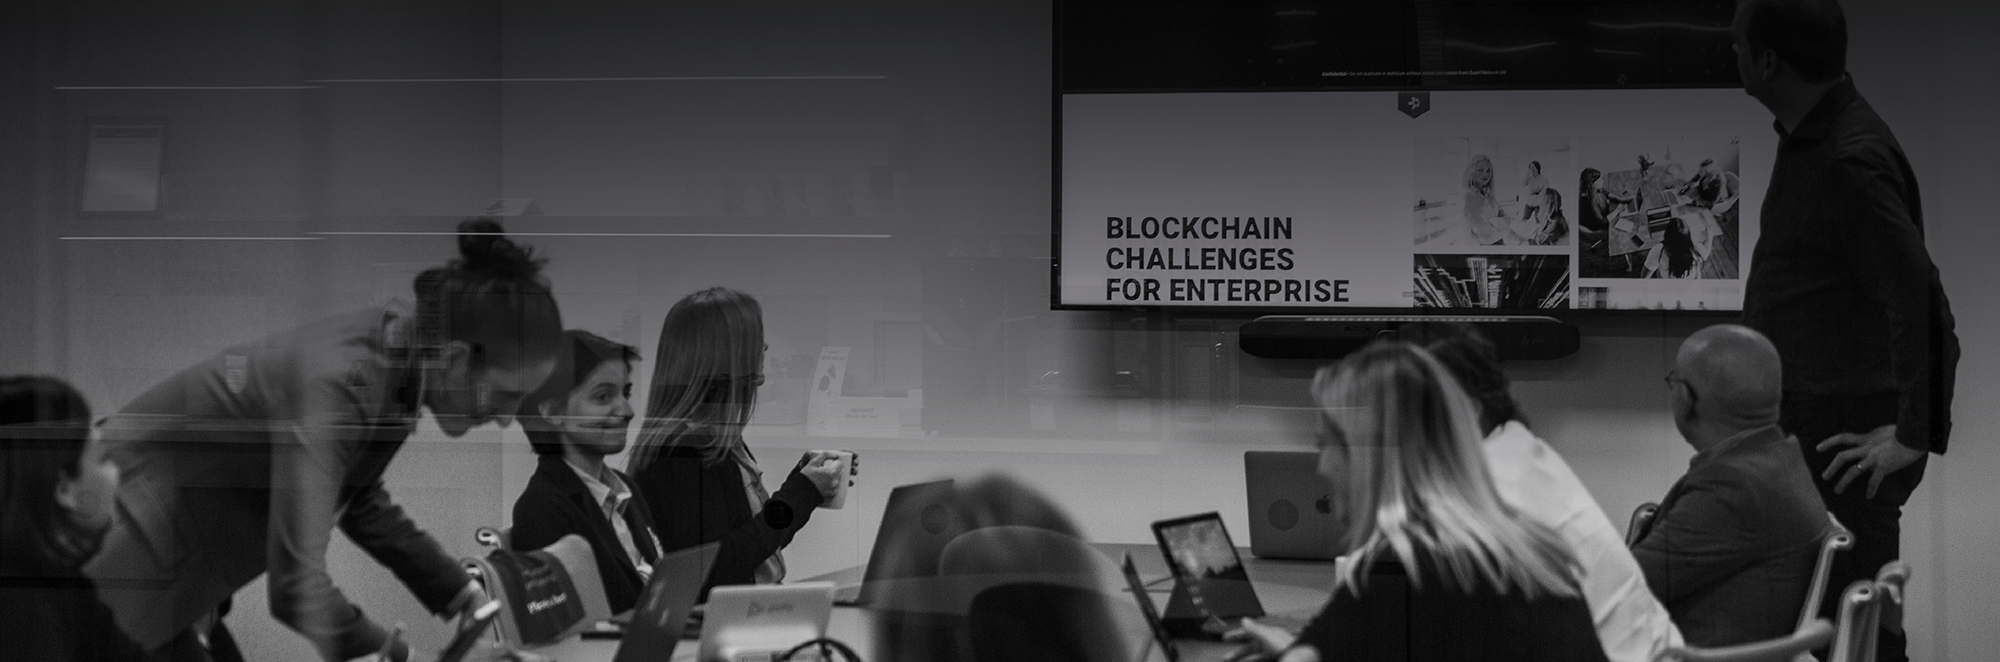 who we are, blockchain presentation by CPO in meeting room 8